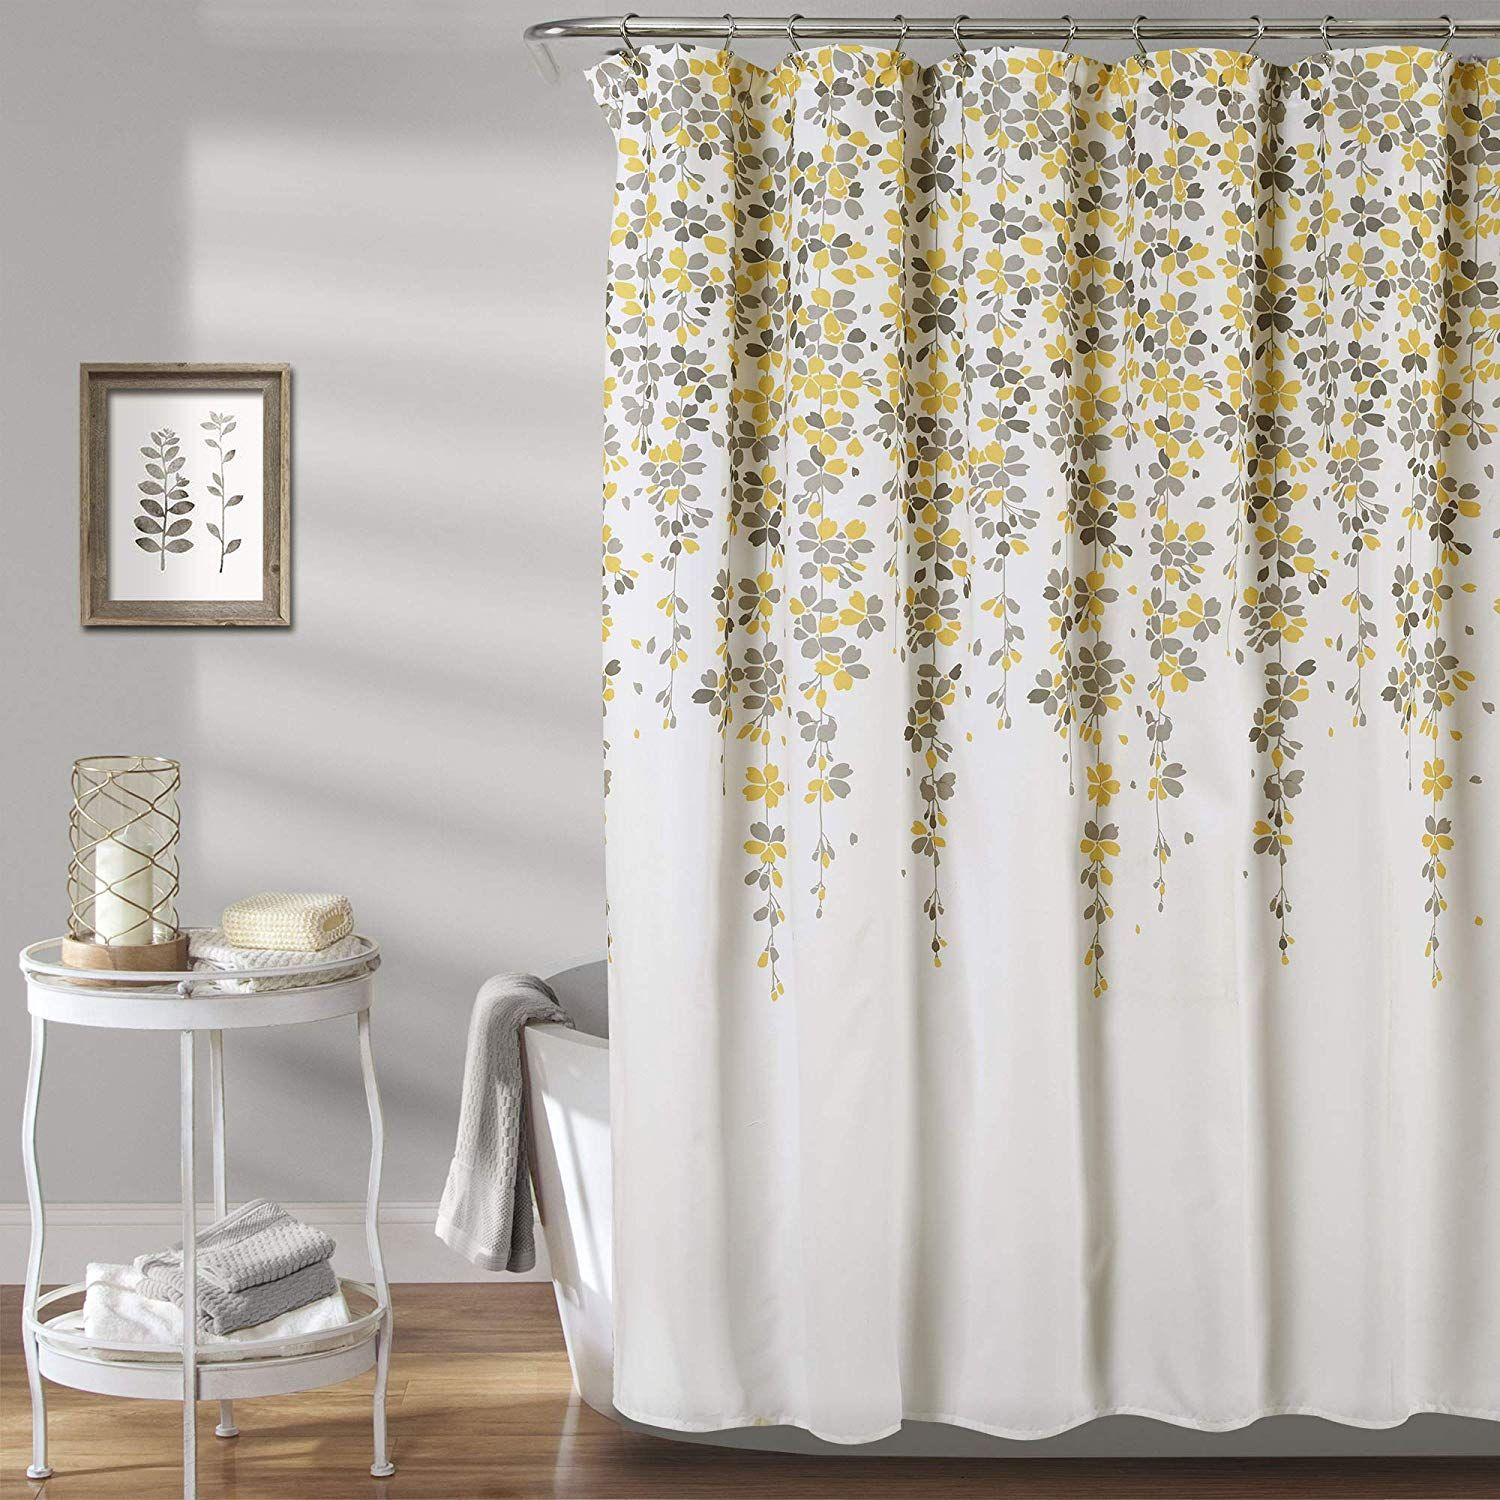 Calming Decorative Design With Cascading Yellow And Gray Flowers